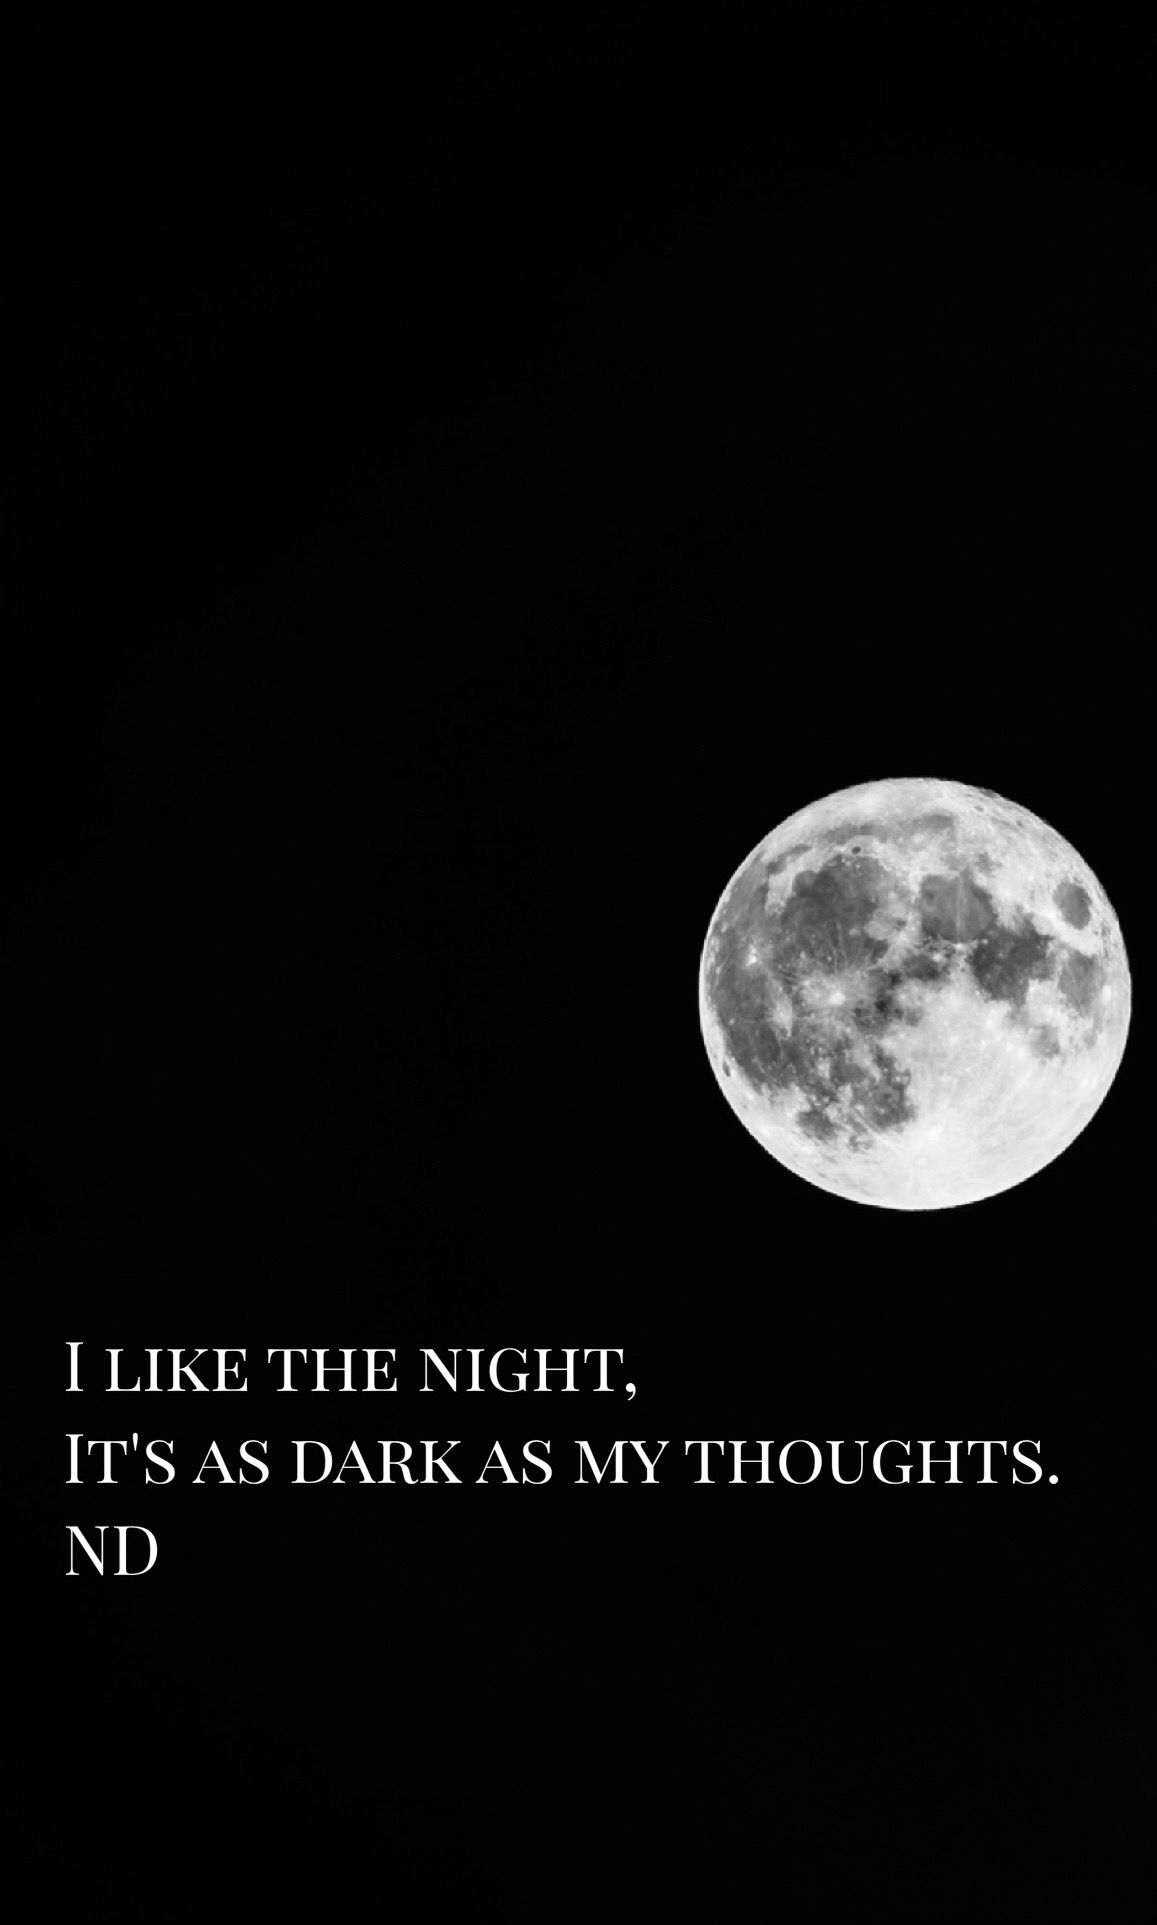 Dark Emo Suicide Quotes: I Like The Night, It's As Dark As My Thoughts...